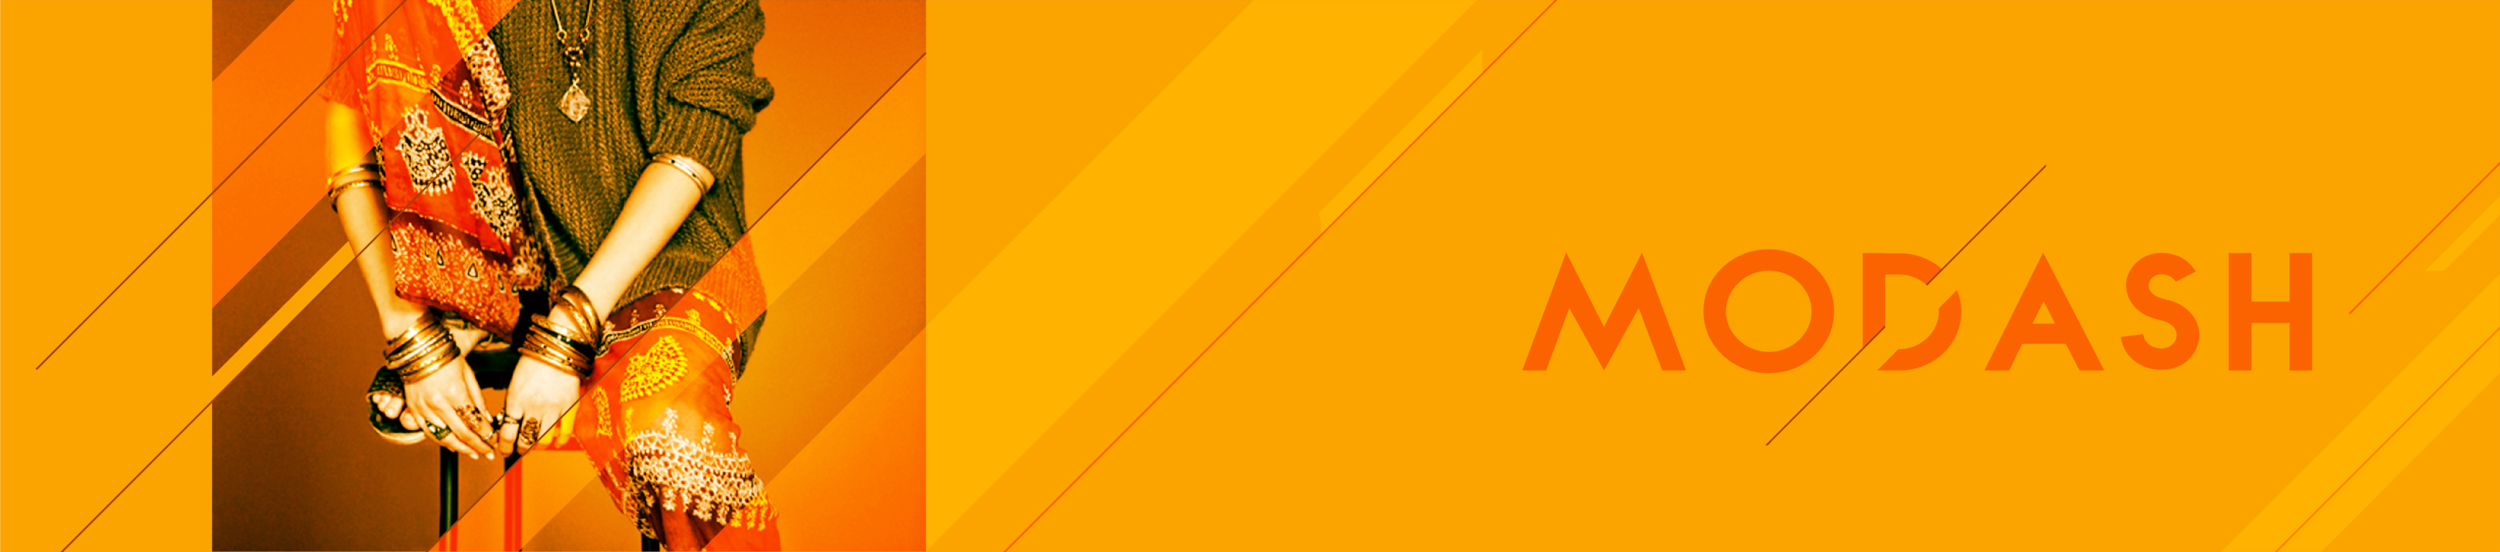 Banner 1-03.png